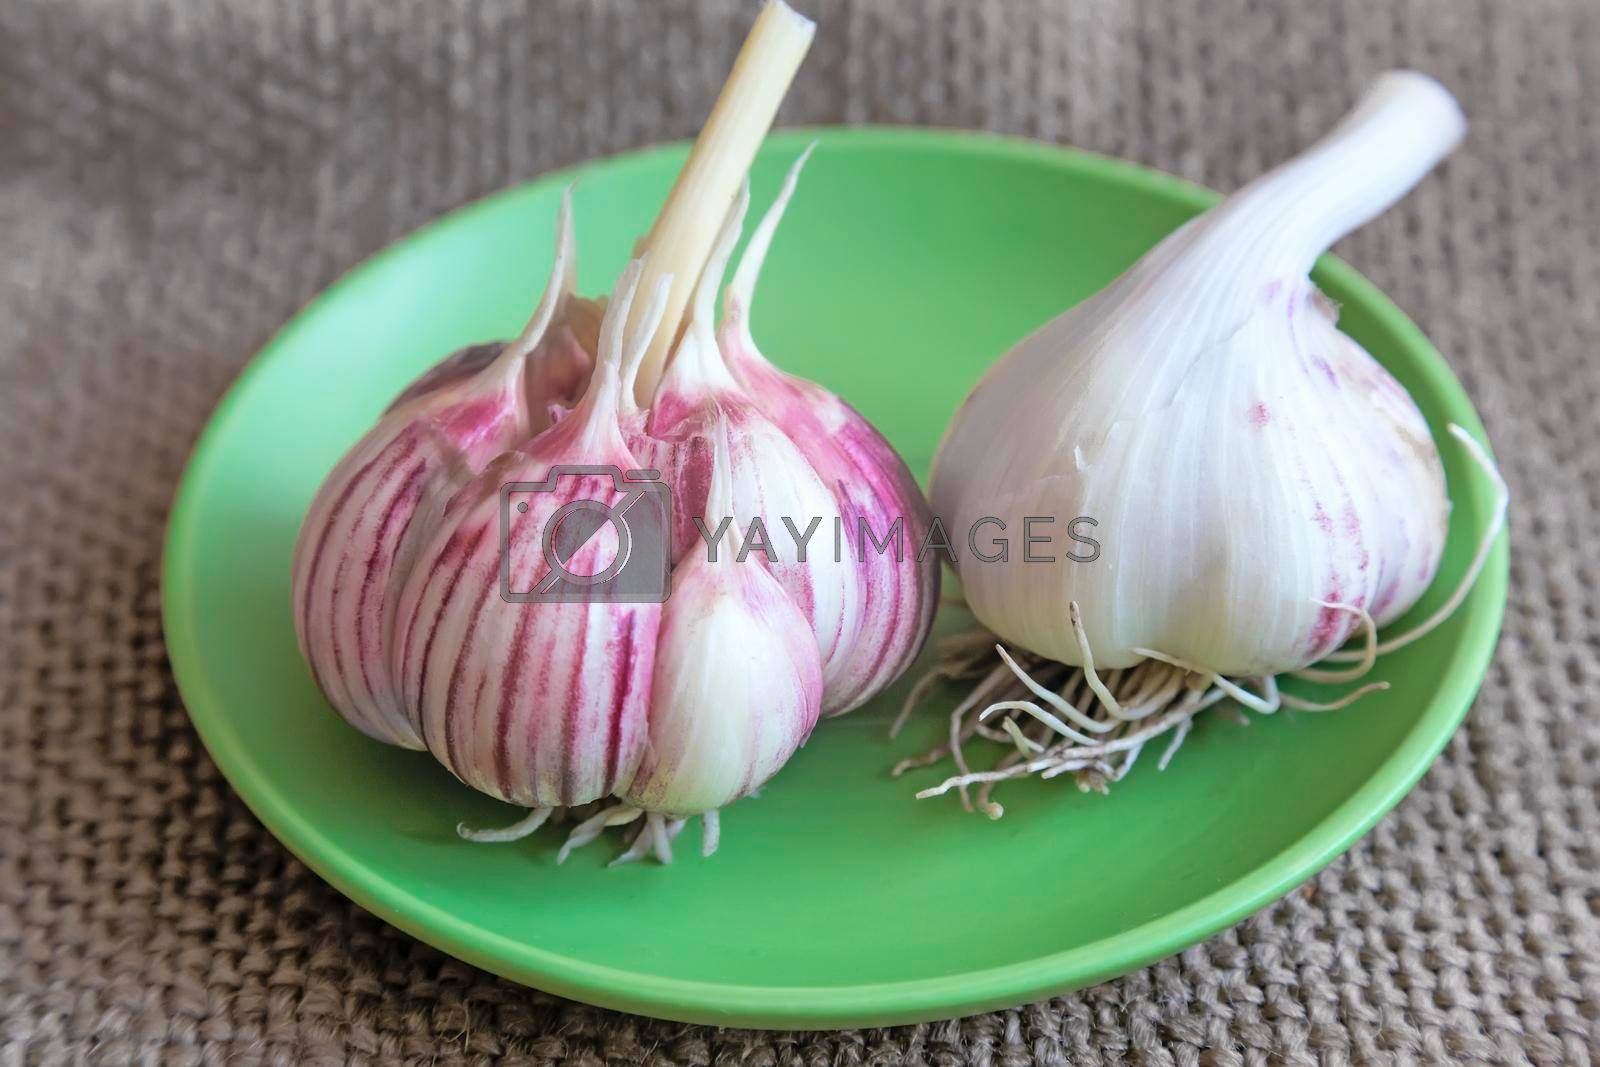 On the table the green plate are two bulbs of garlic.